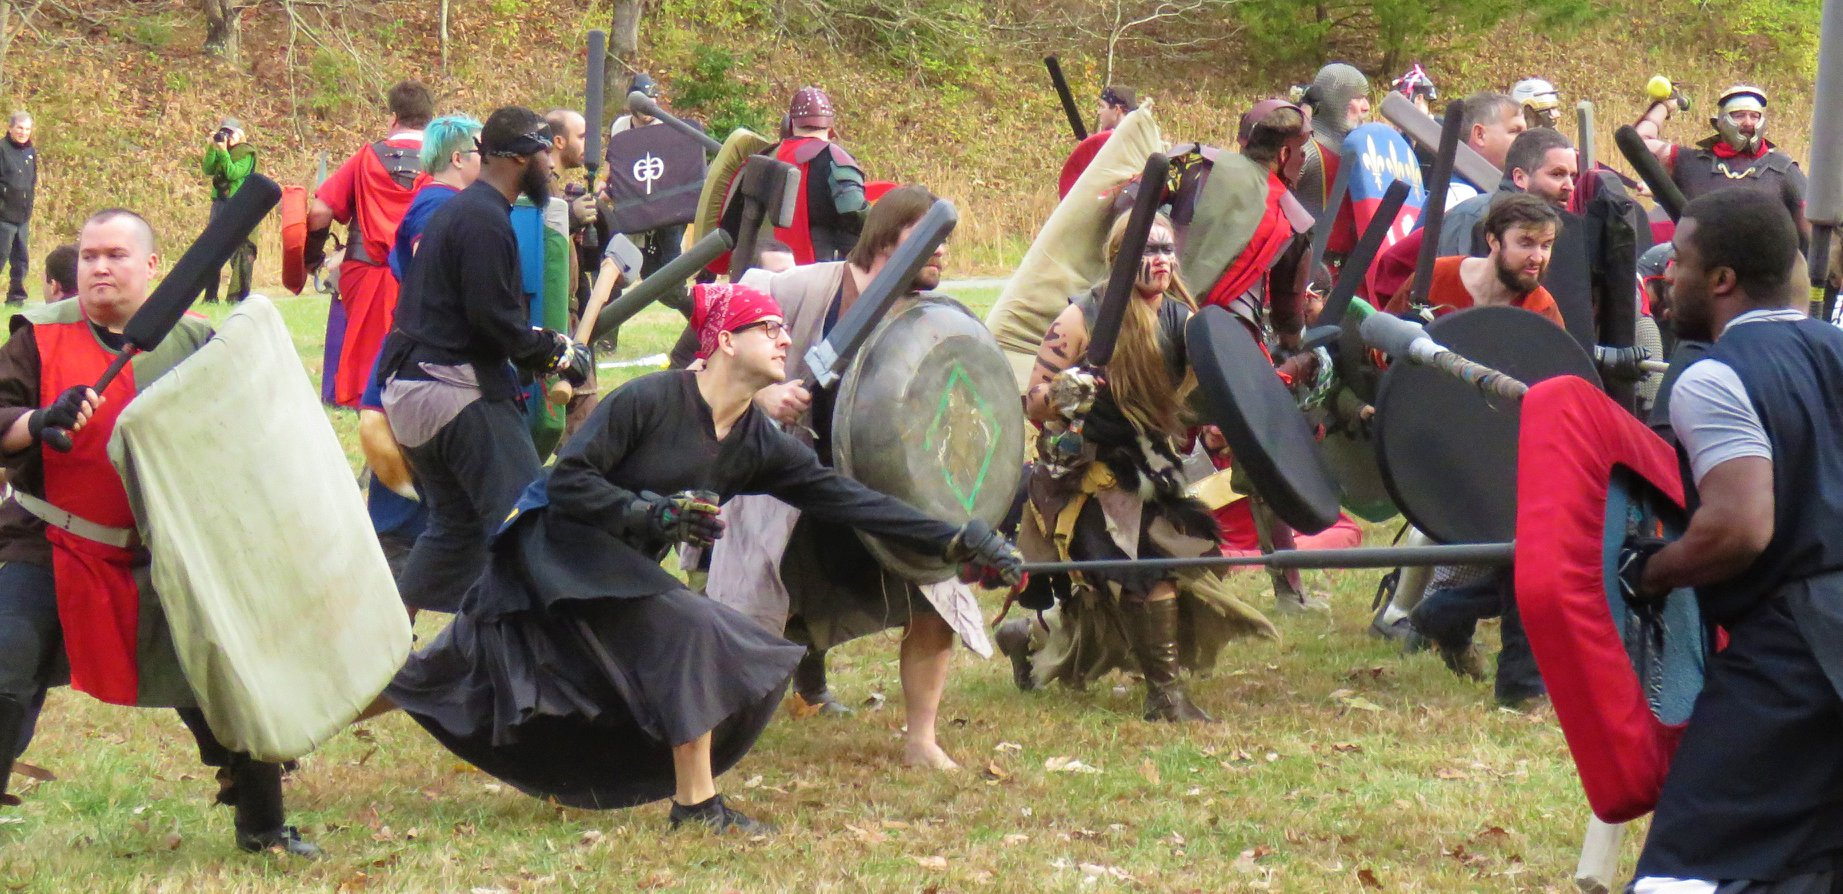 Two armies fighting each other. Multiple individual fighters swinging weapons on both sides.